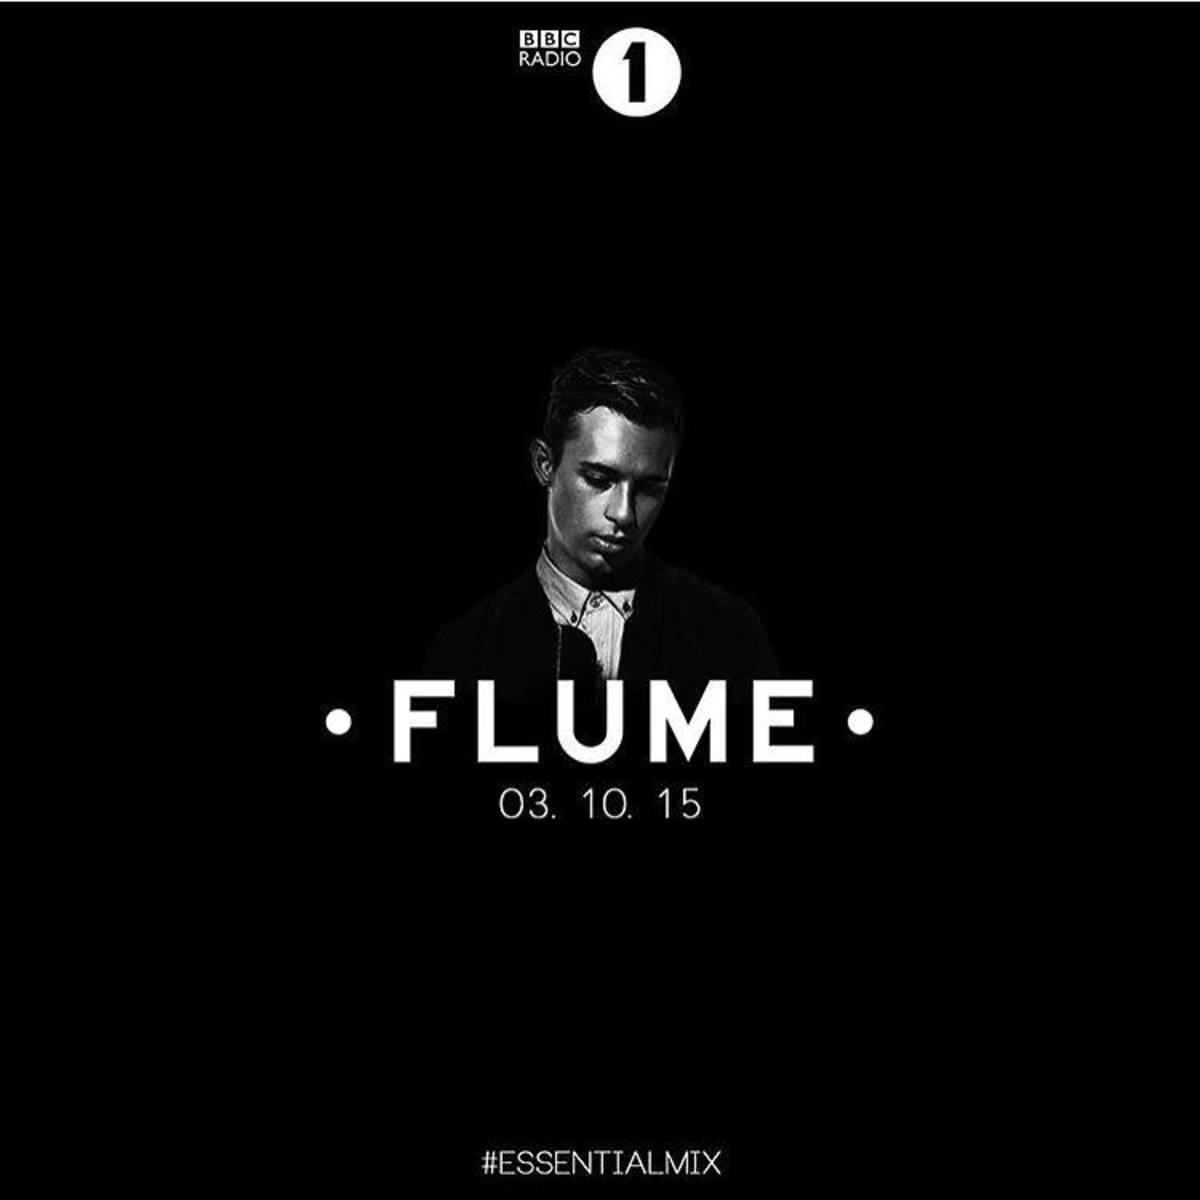 flume BBC Radio 1 essential mix